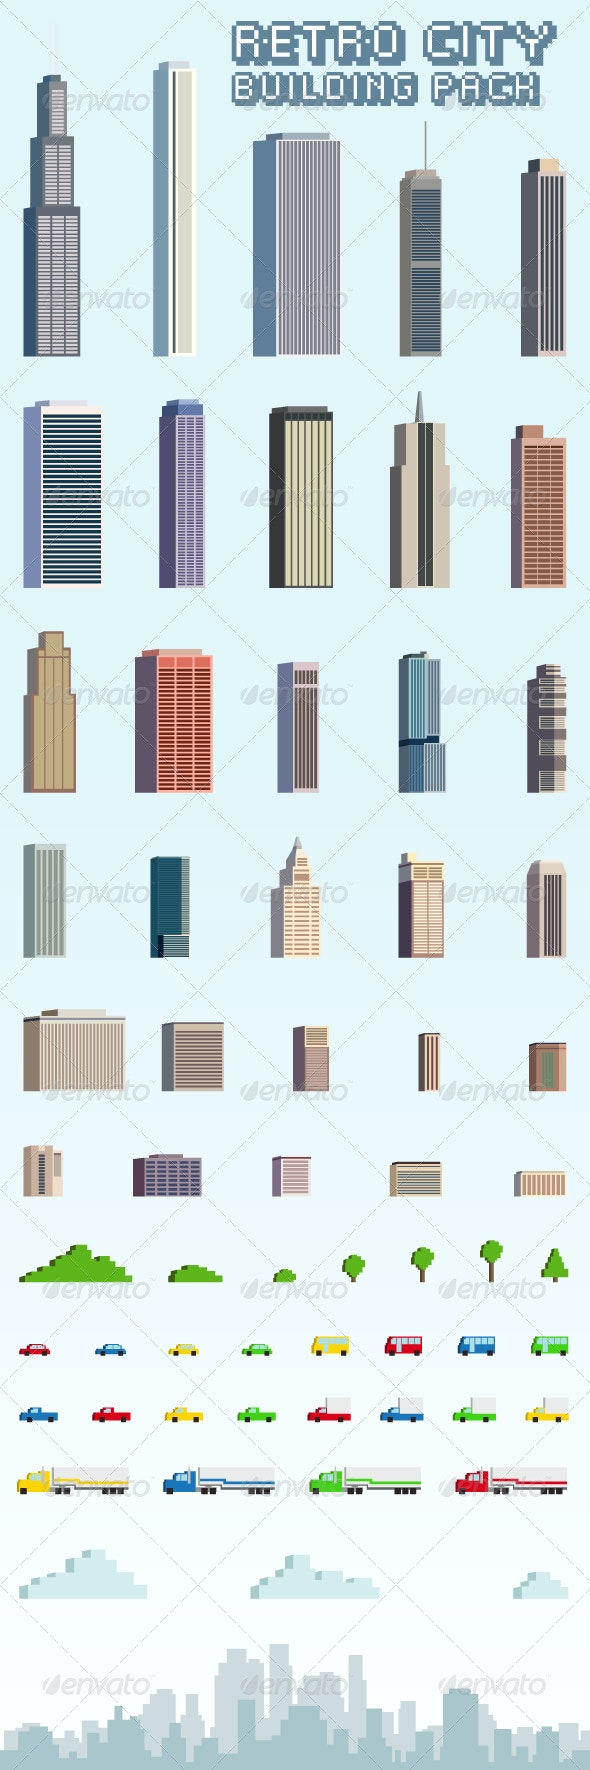 Retro City Building Pack - Backgrounds Game Assets